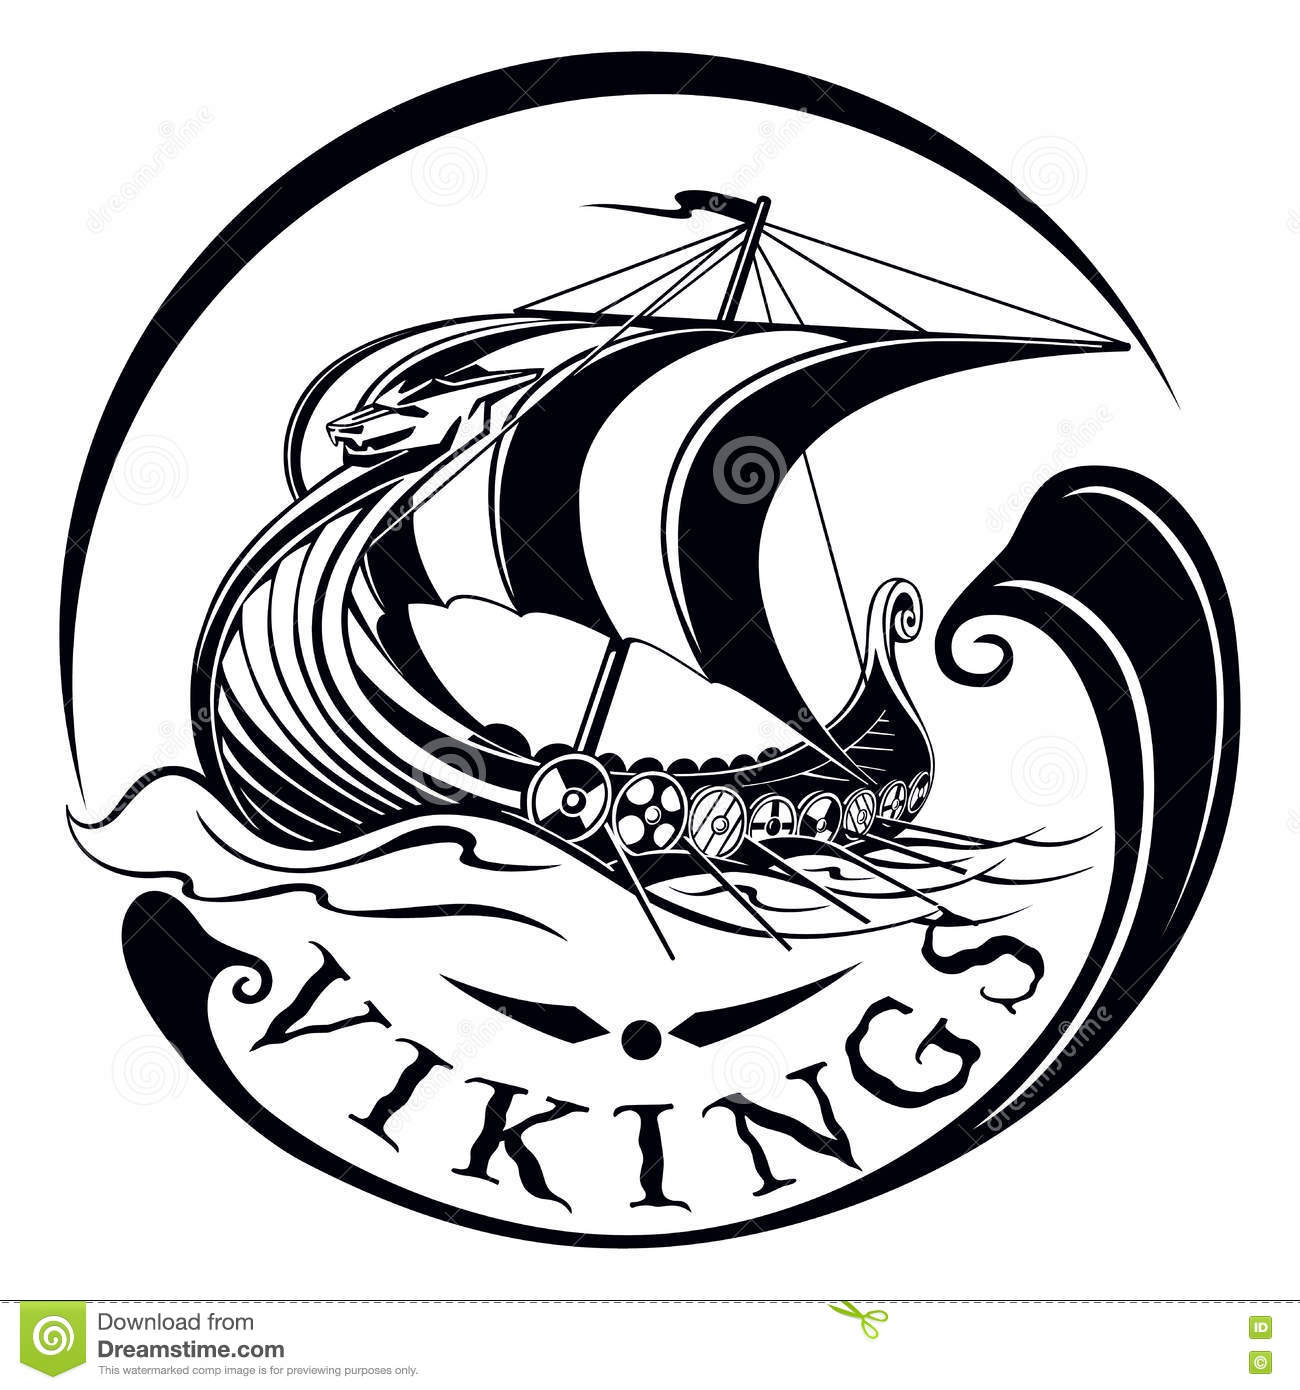 Drakkar Boat Viking Vintage Sailing Warship Stock Vector